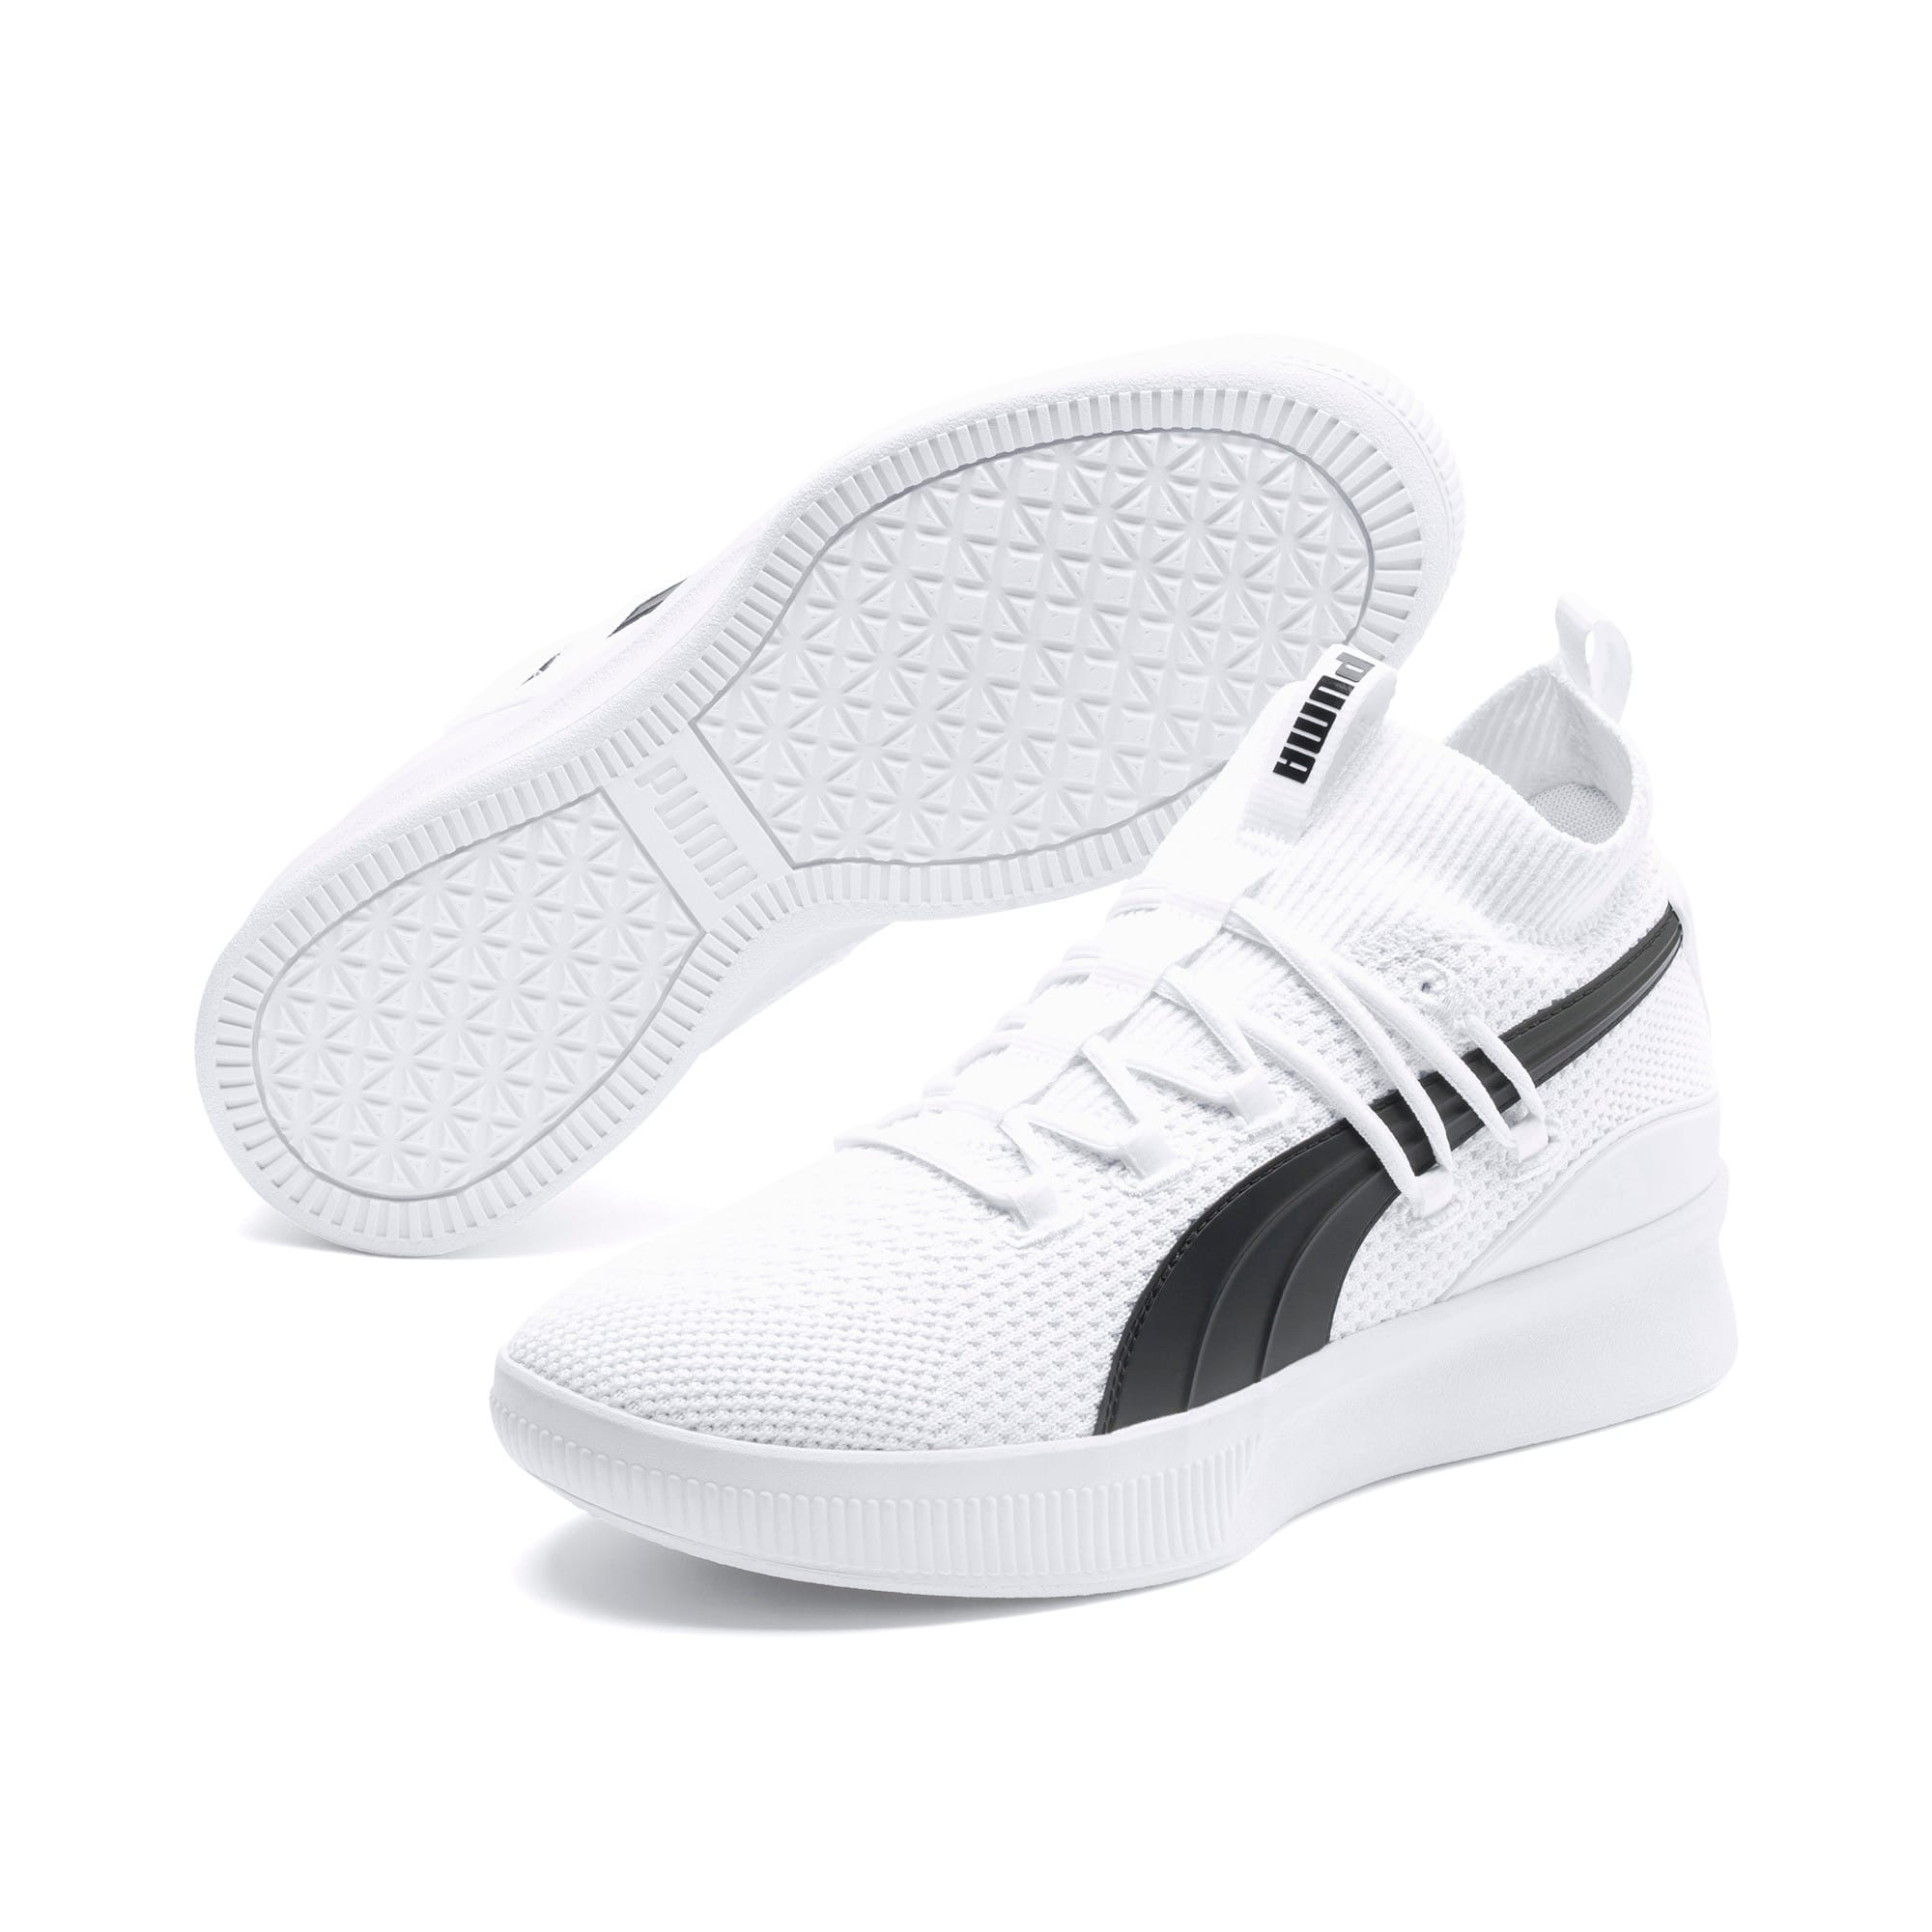 Thumbnail 2 of Clyde Court Core Basketball Shoes, Puma White, medium